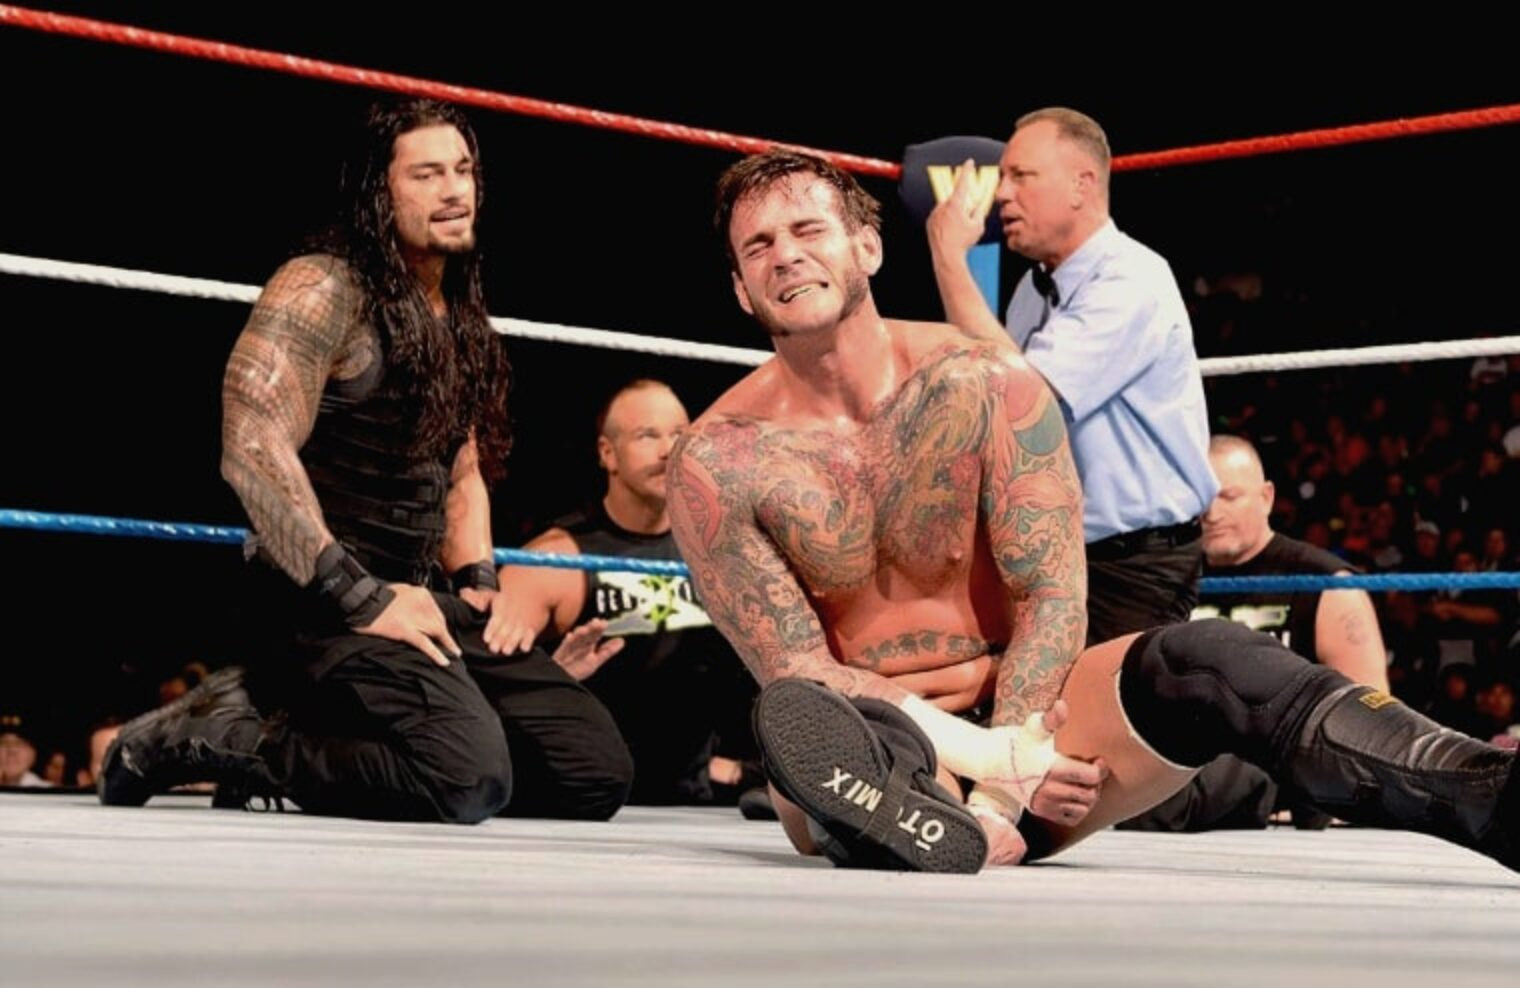 Roman Reigns ya ha estado en un ring con Punk.